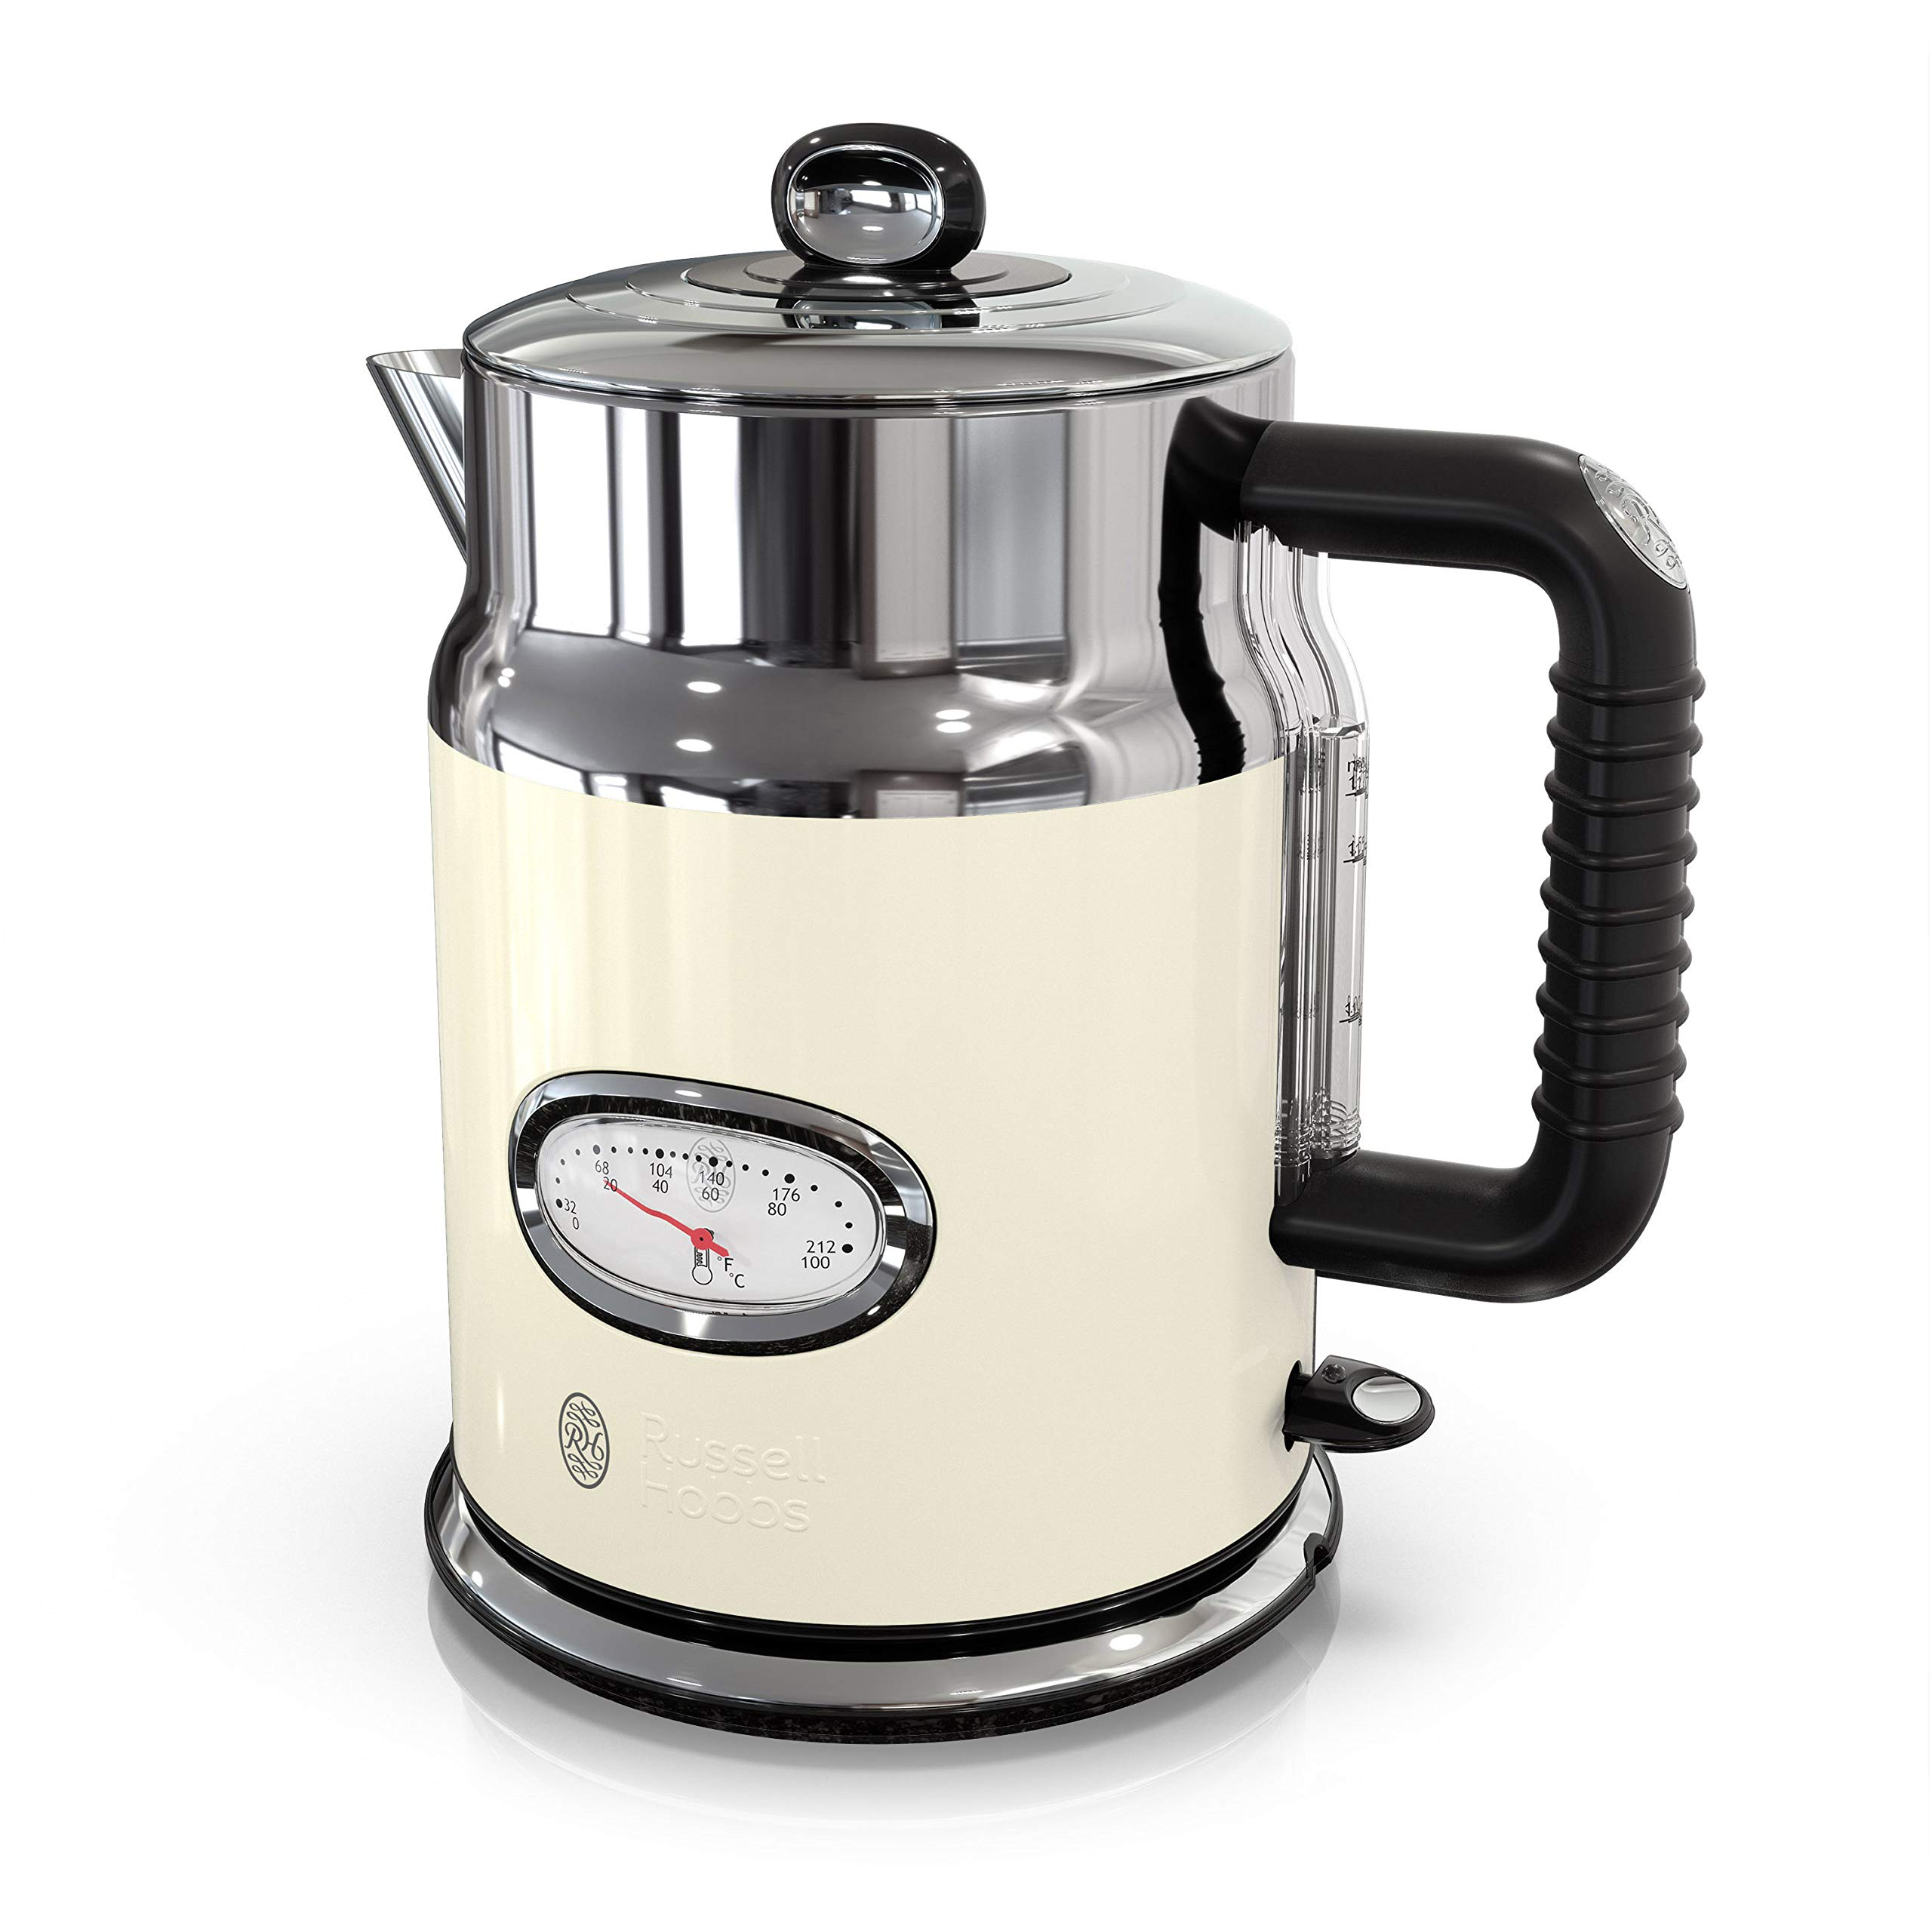 Russell Hobbs KE5550CRR Retro Style Electric Kettle, 1.7L, Cream by Russell Hobbs (Image #1)